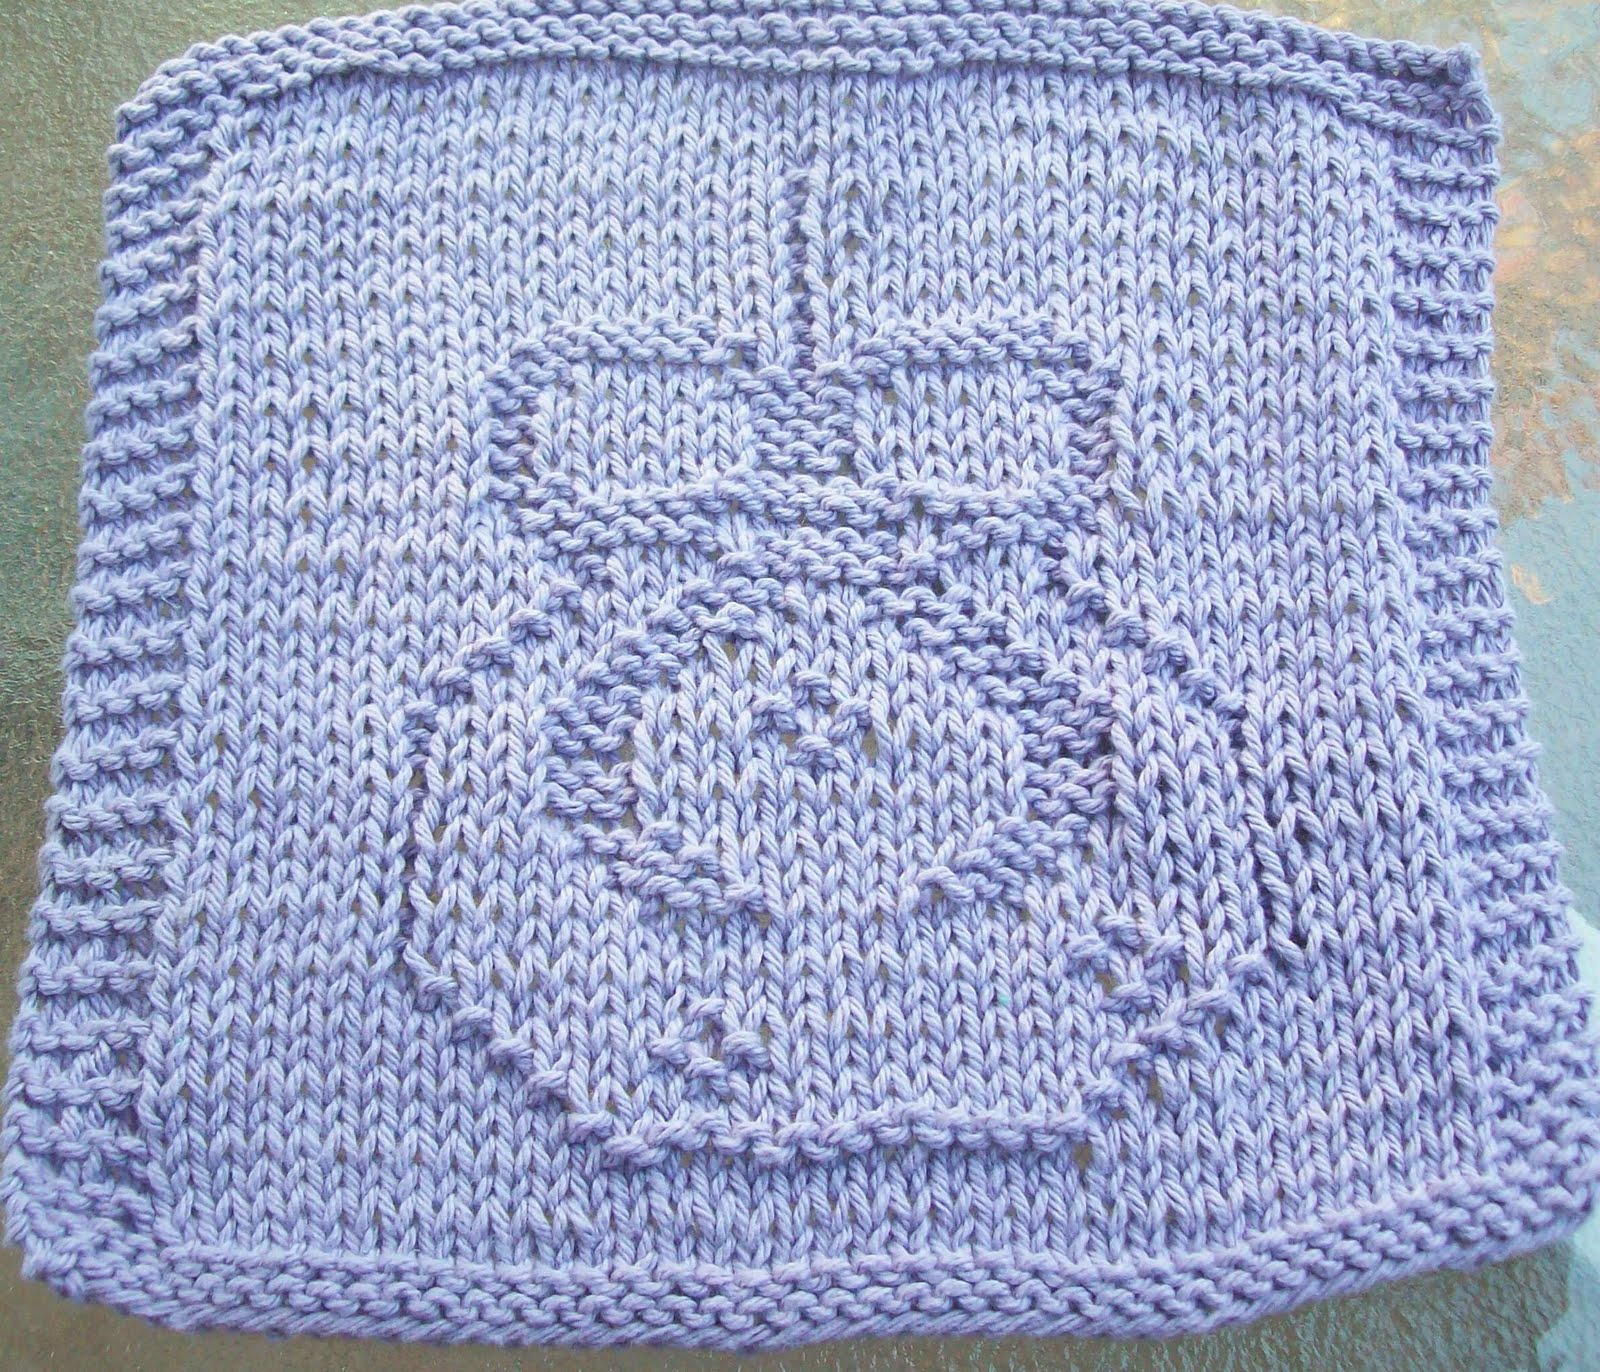 DigKnitty Designs: Another Ornament Knit Dishcloth Pattern